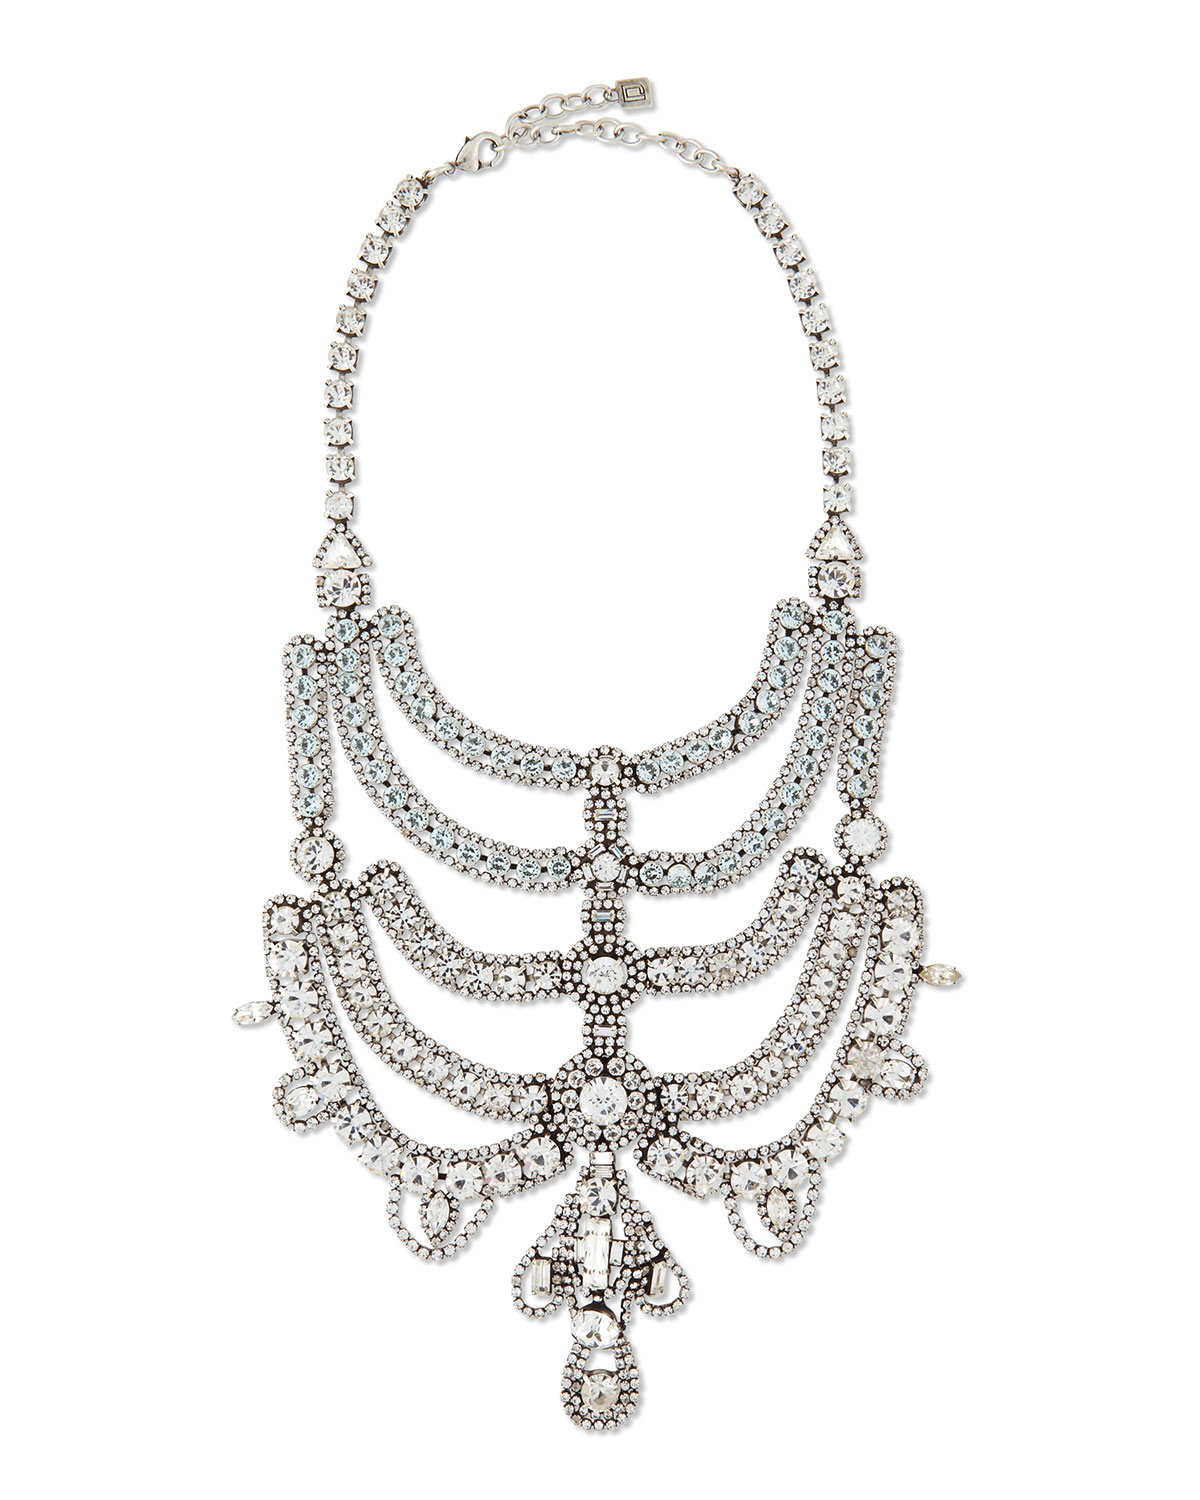 MARGAUX CRYSTAL NECKLACE